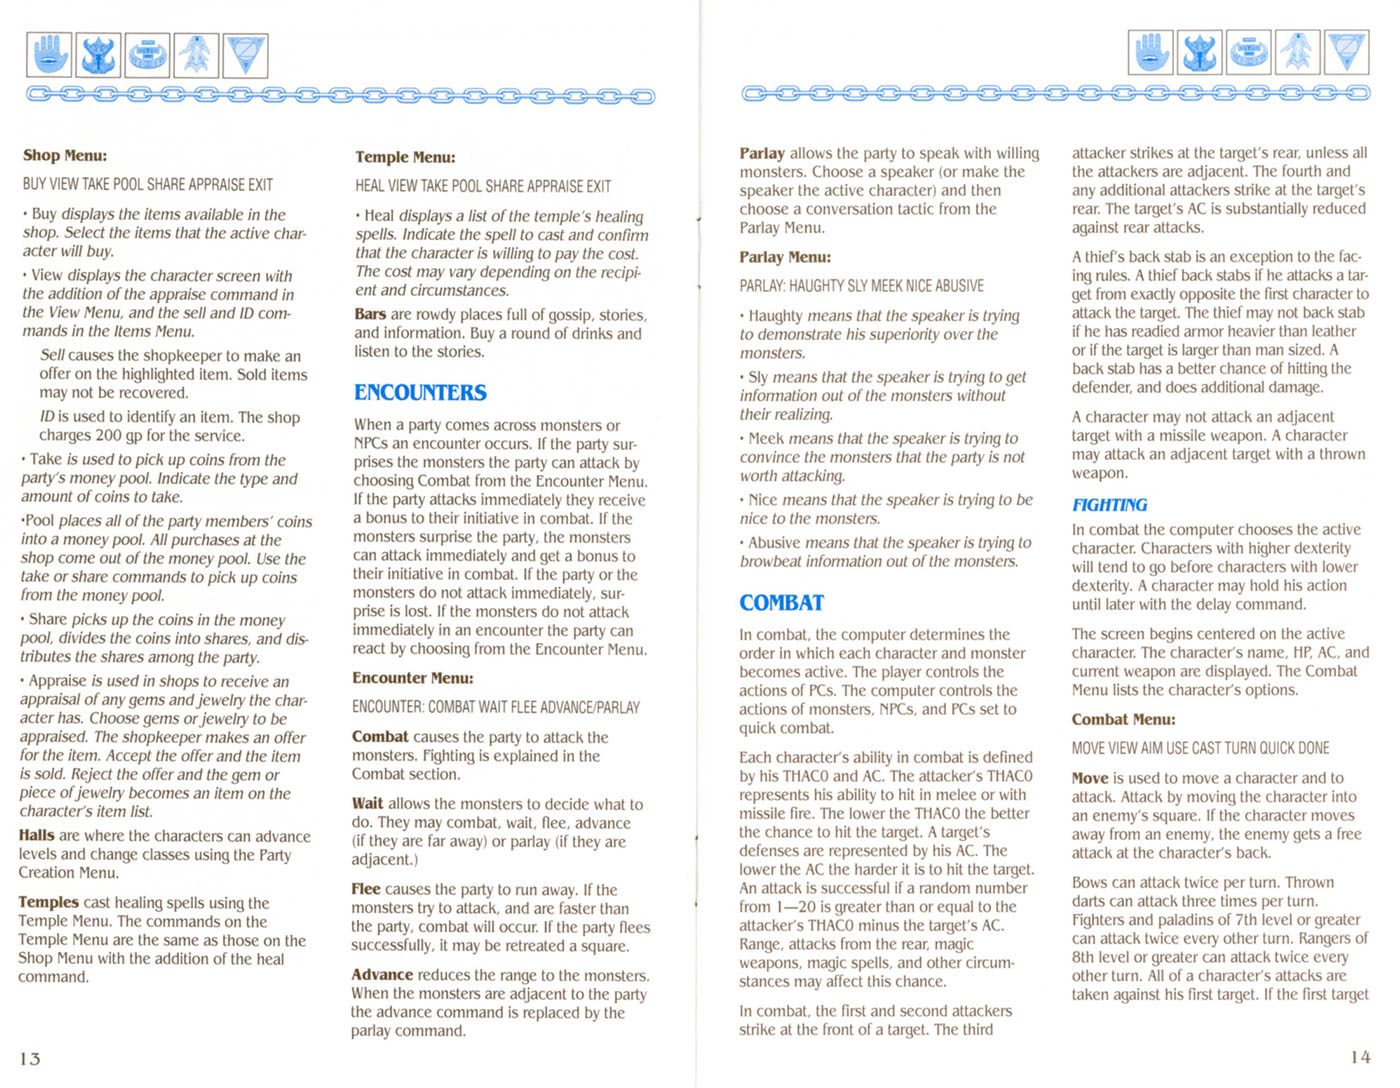 Curse Of The Azure Bonds manual page 13